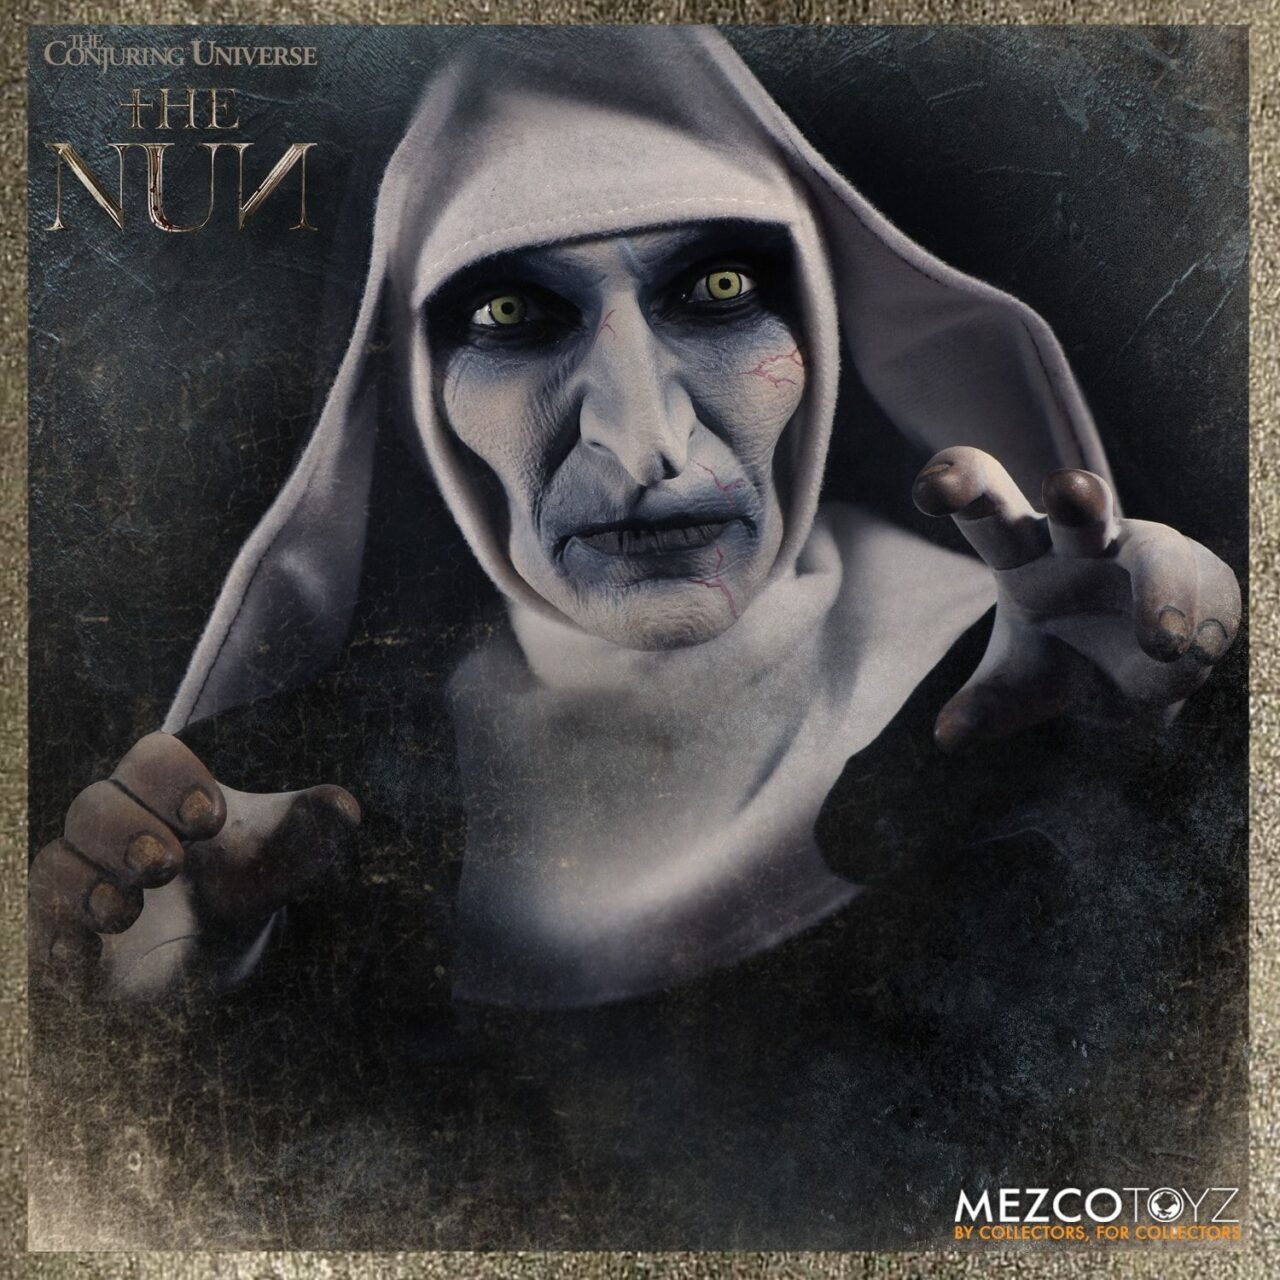 The Nun 6 scaled - Mezco's THE NUN Doll May Be Scarier Than the Movie Itself